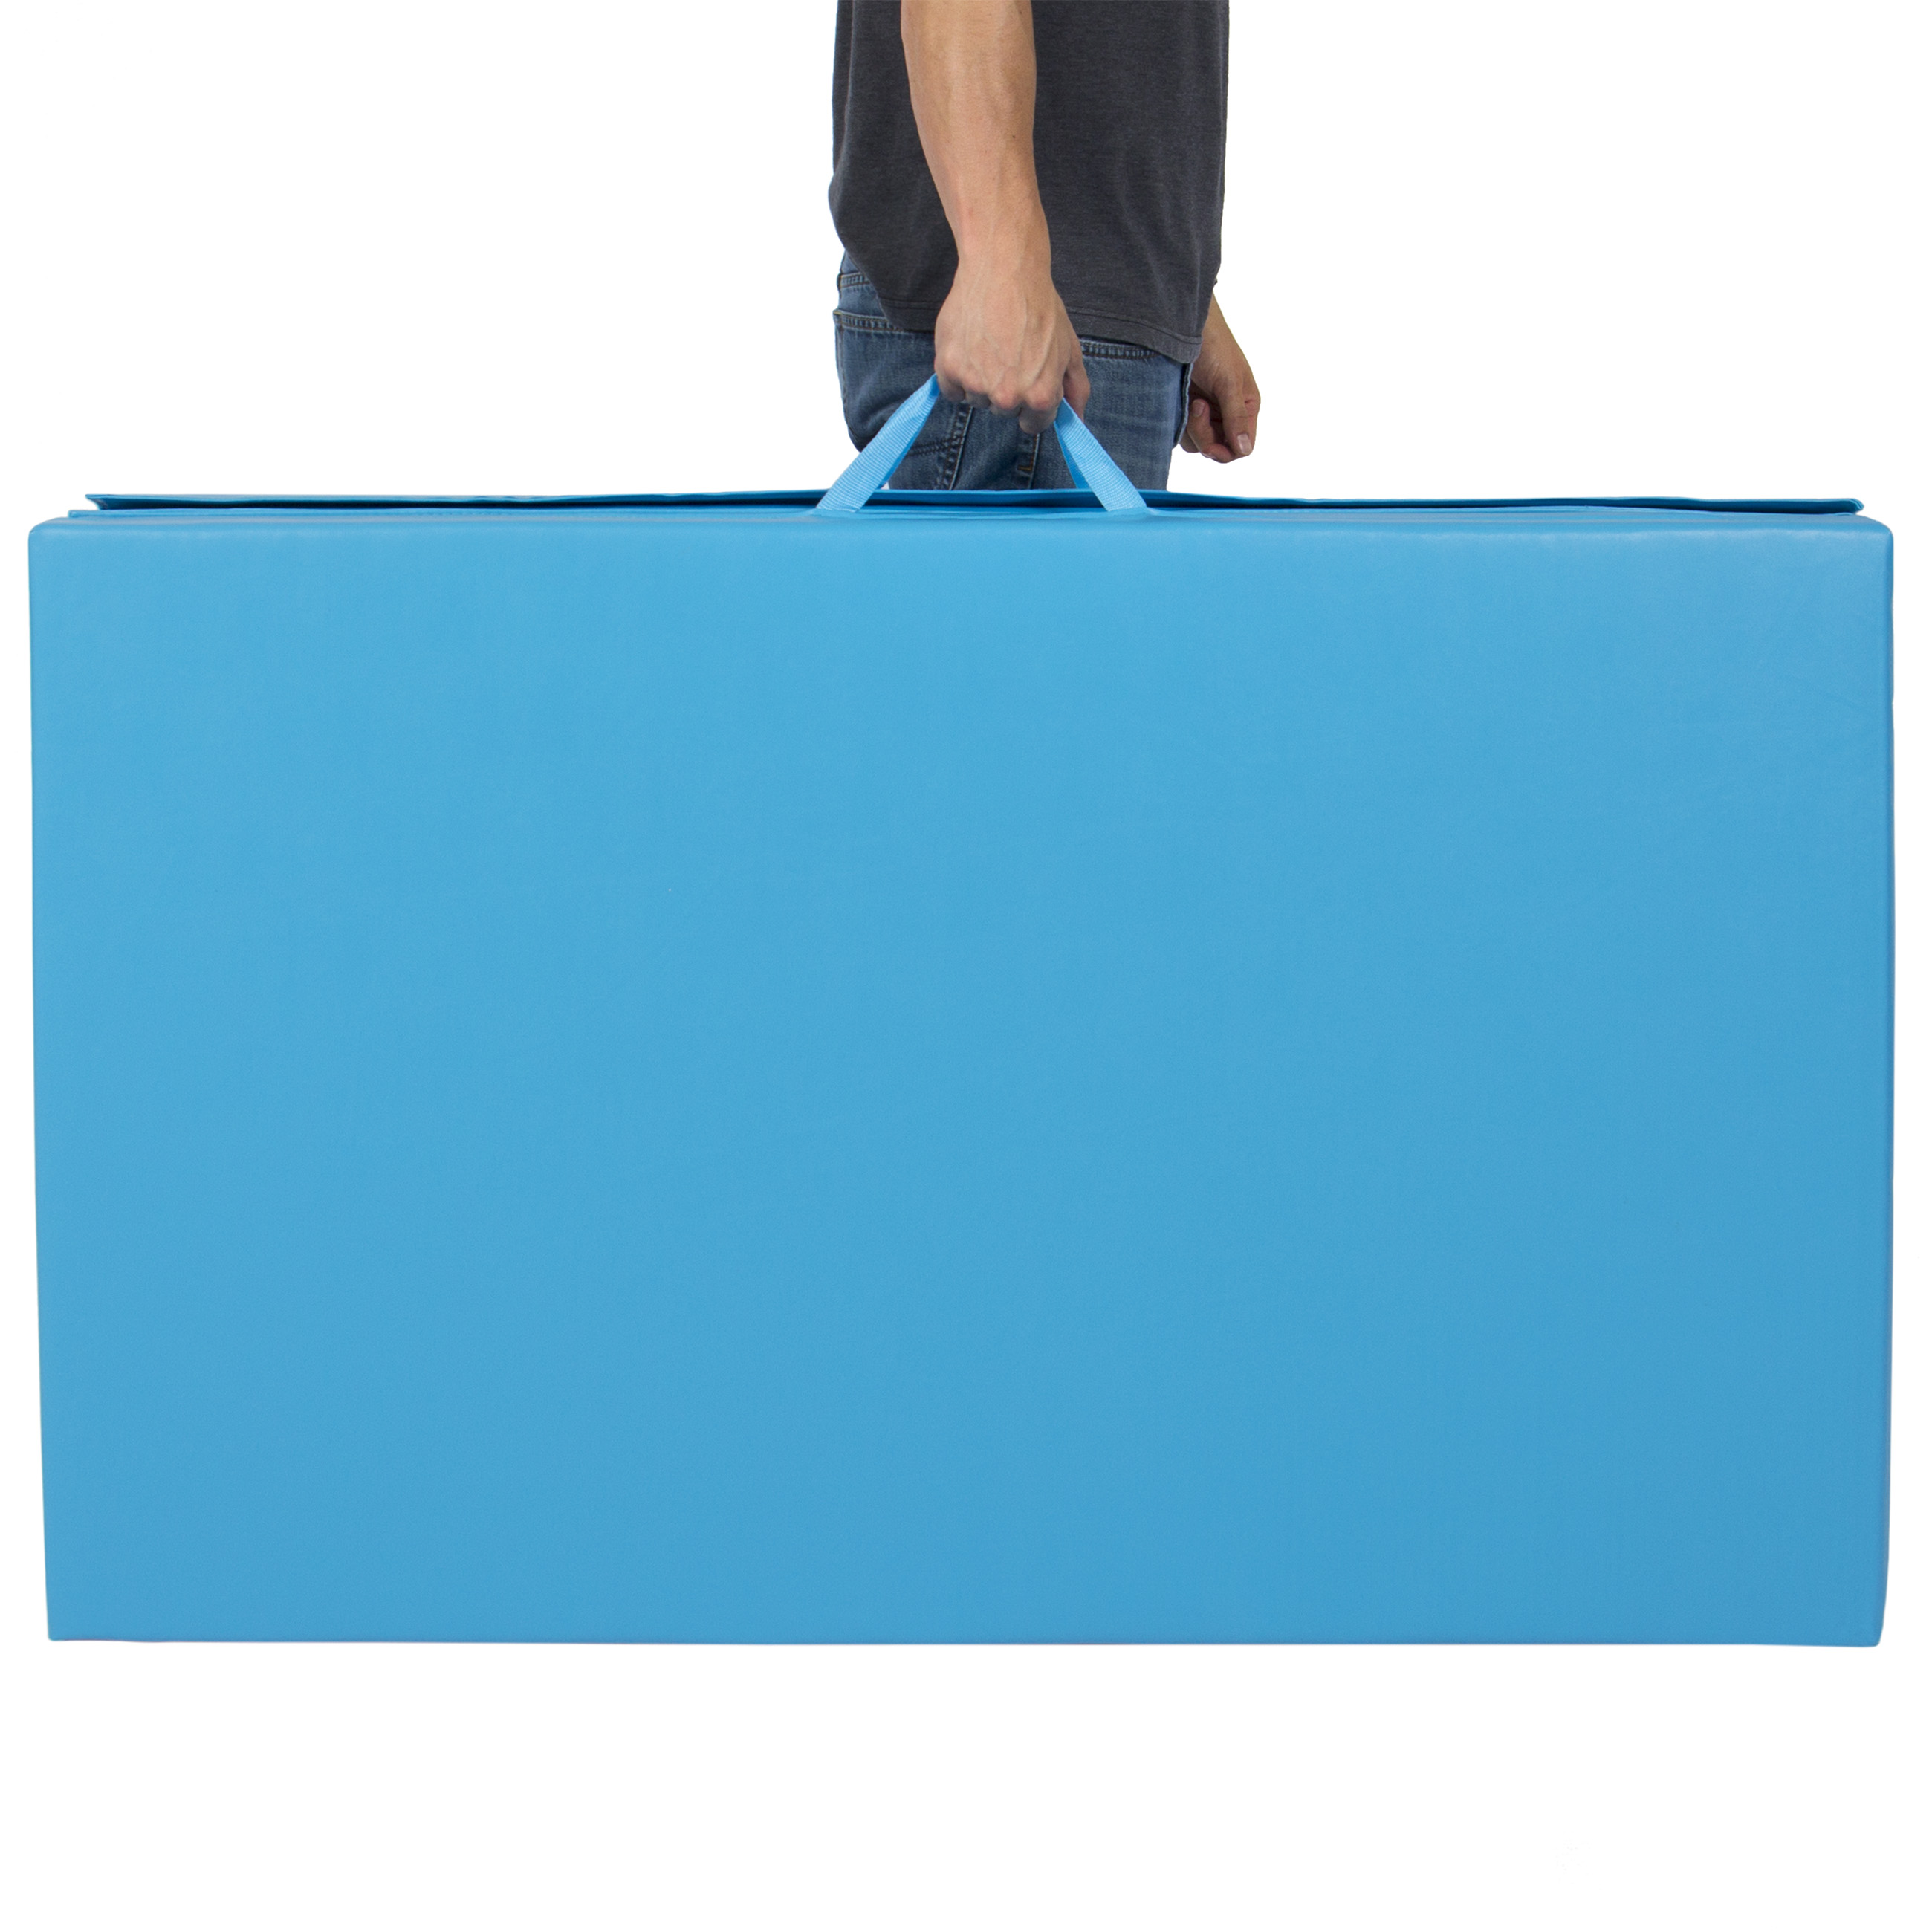 best x products product exercise preschool shape skill shop rakuten mat mats bestchoiceproducts choice gymnastic octagon